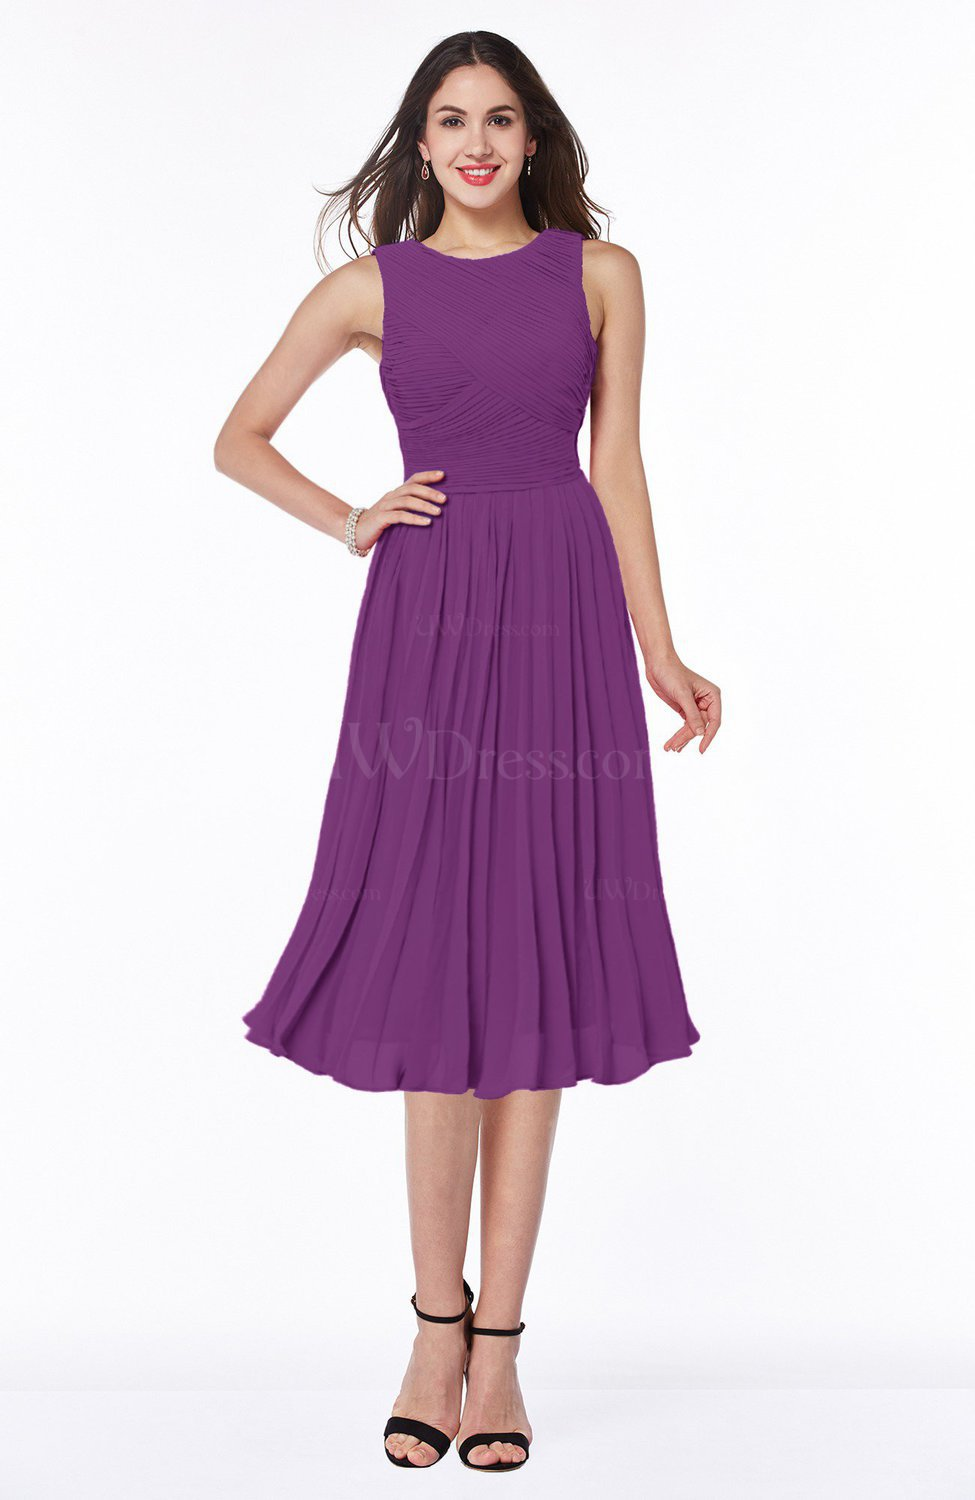 e8f03c444e7 Dahlia Modern A-line V-neck Sleeveless Tea Length Pleated Plus Size  Bridesmaid Dresses (Style D09131)